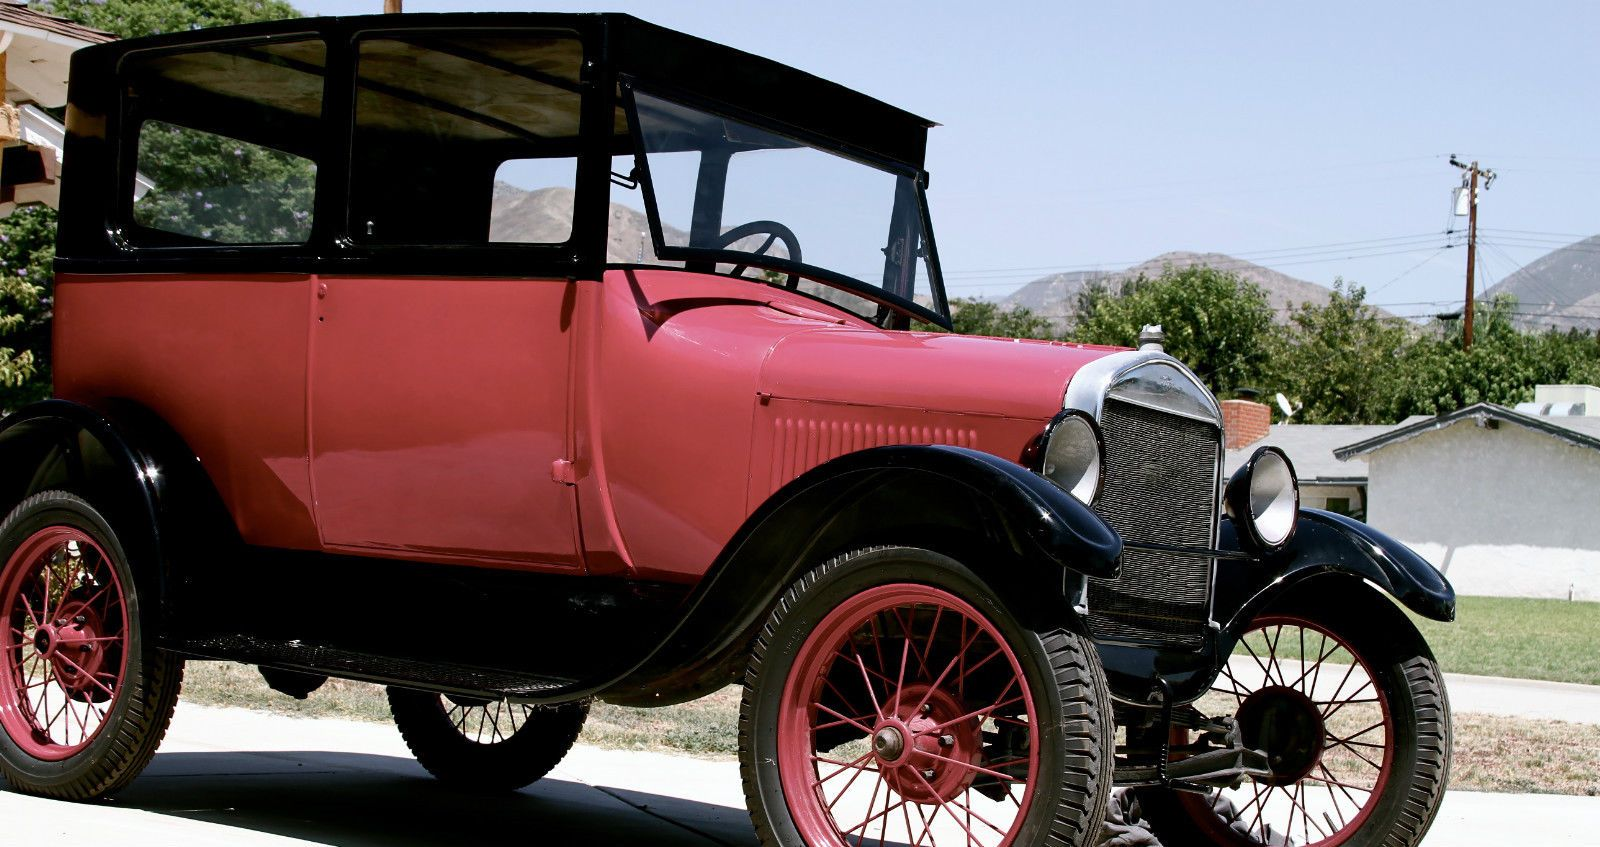 Ford: Model T 2 door sedan | Ford models, Ford and Sedans